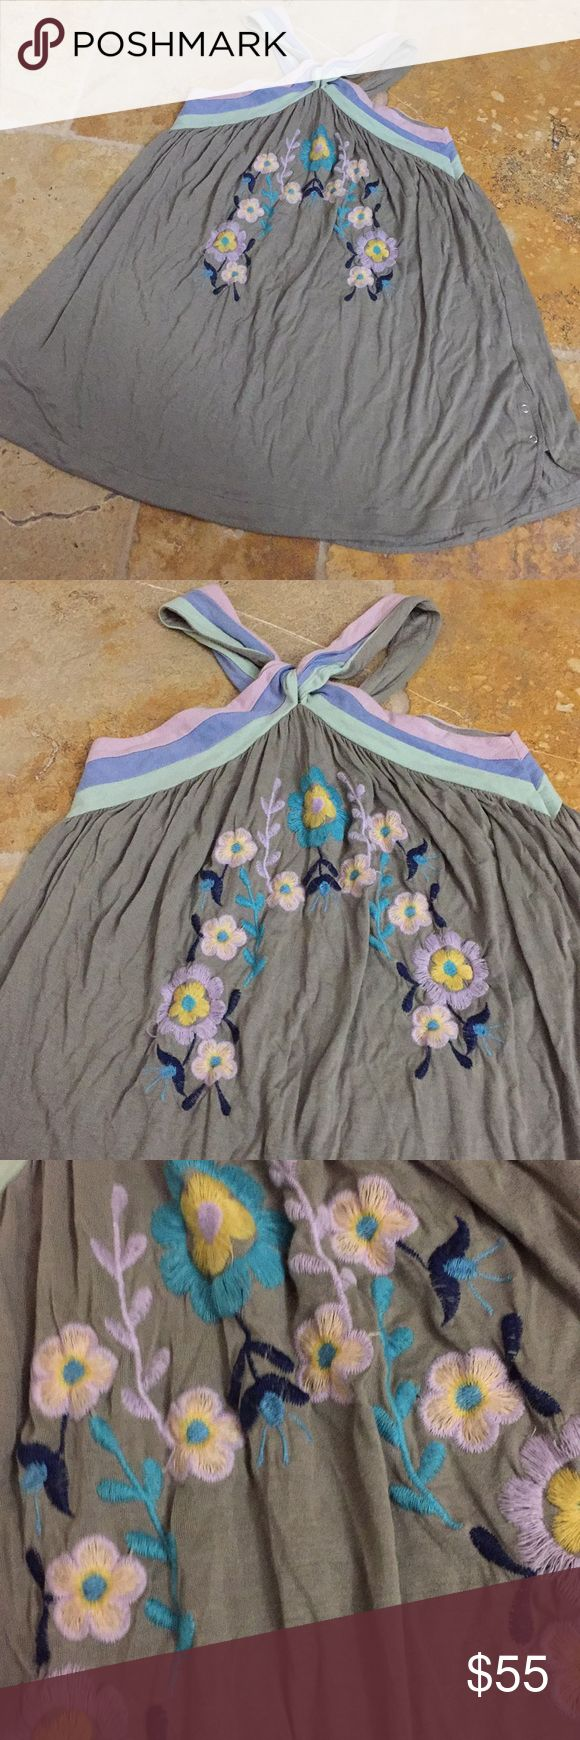 Rebel Yell 100% rayon retro w/boho embroidery Retro color 100%rayon minidress with embroidery & crossed neckline , super easy and casual swing style. Colors: olive green pastel pink, soft periwinkle, soft green embroidery navy turquoise yellow pink Rebel Yell Dresses Mini